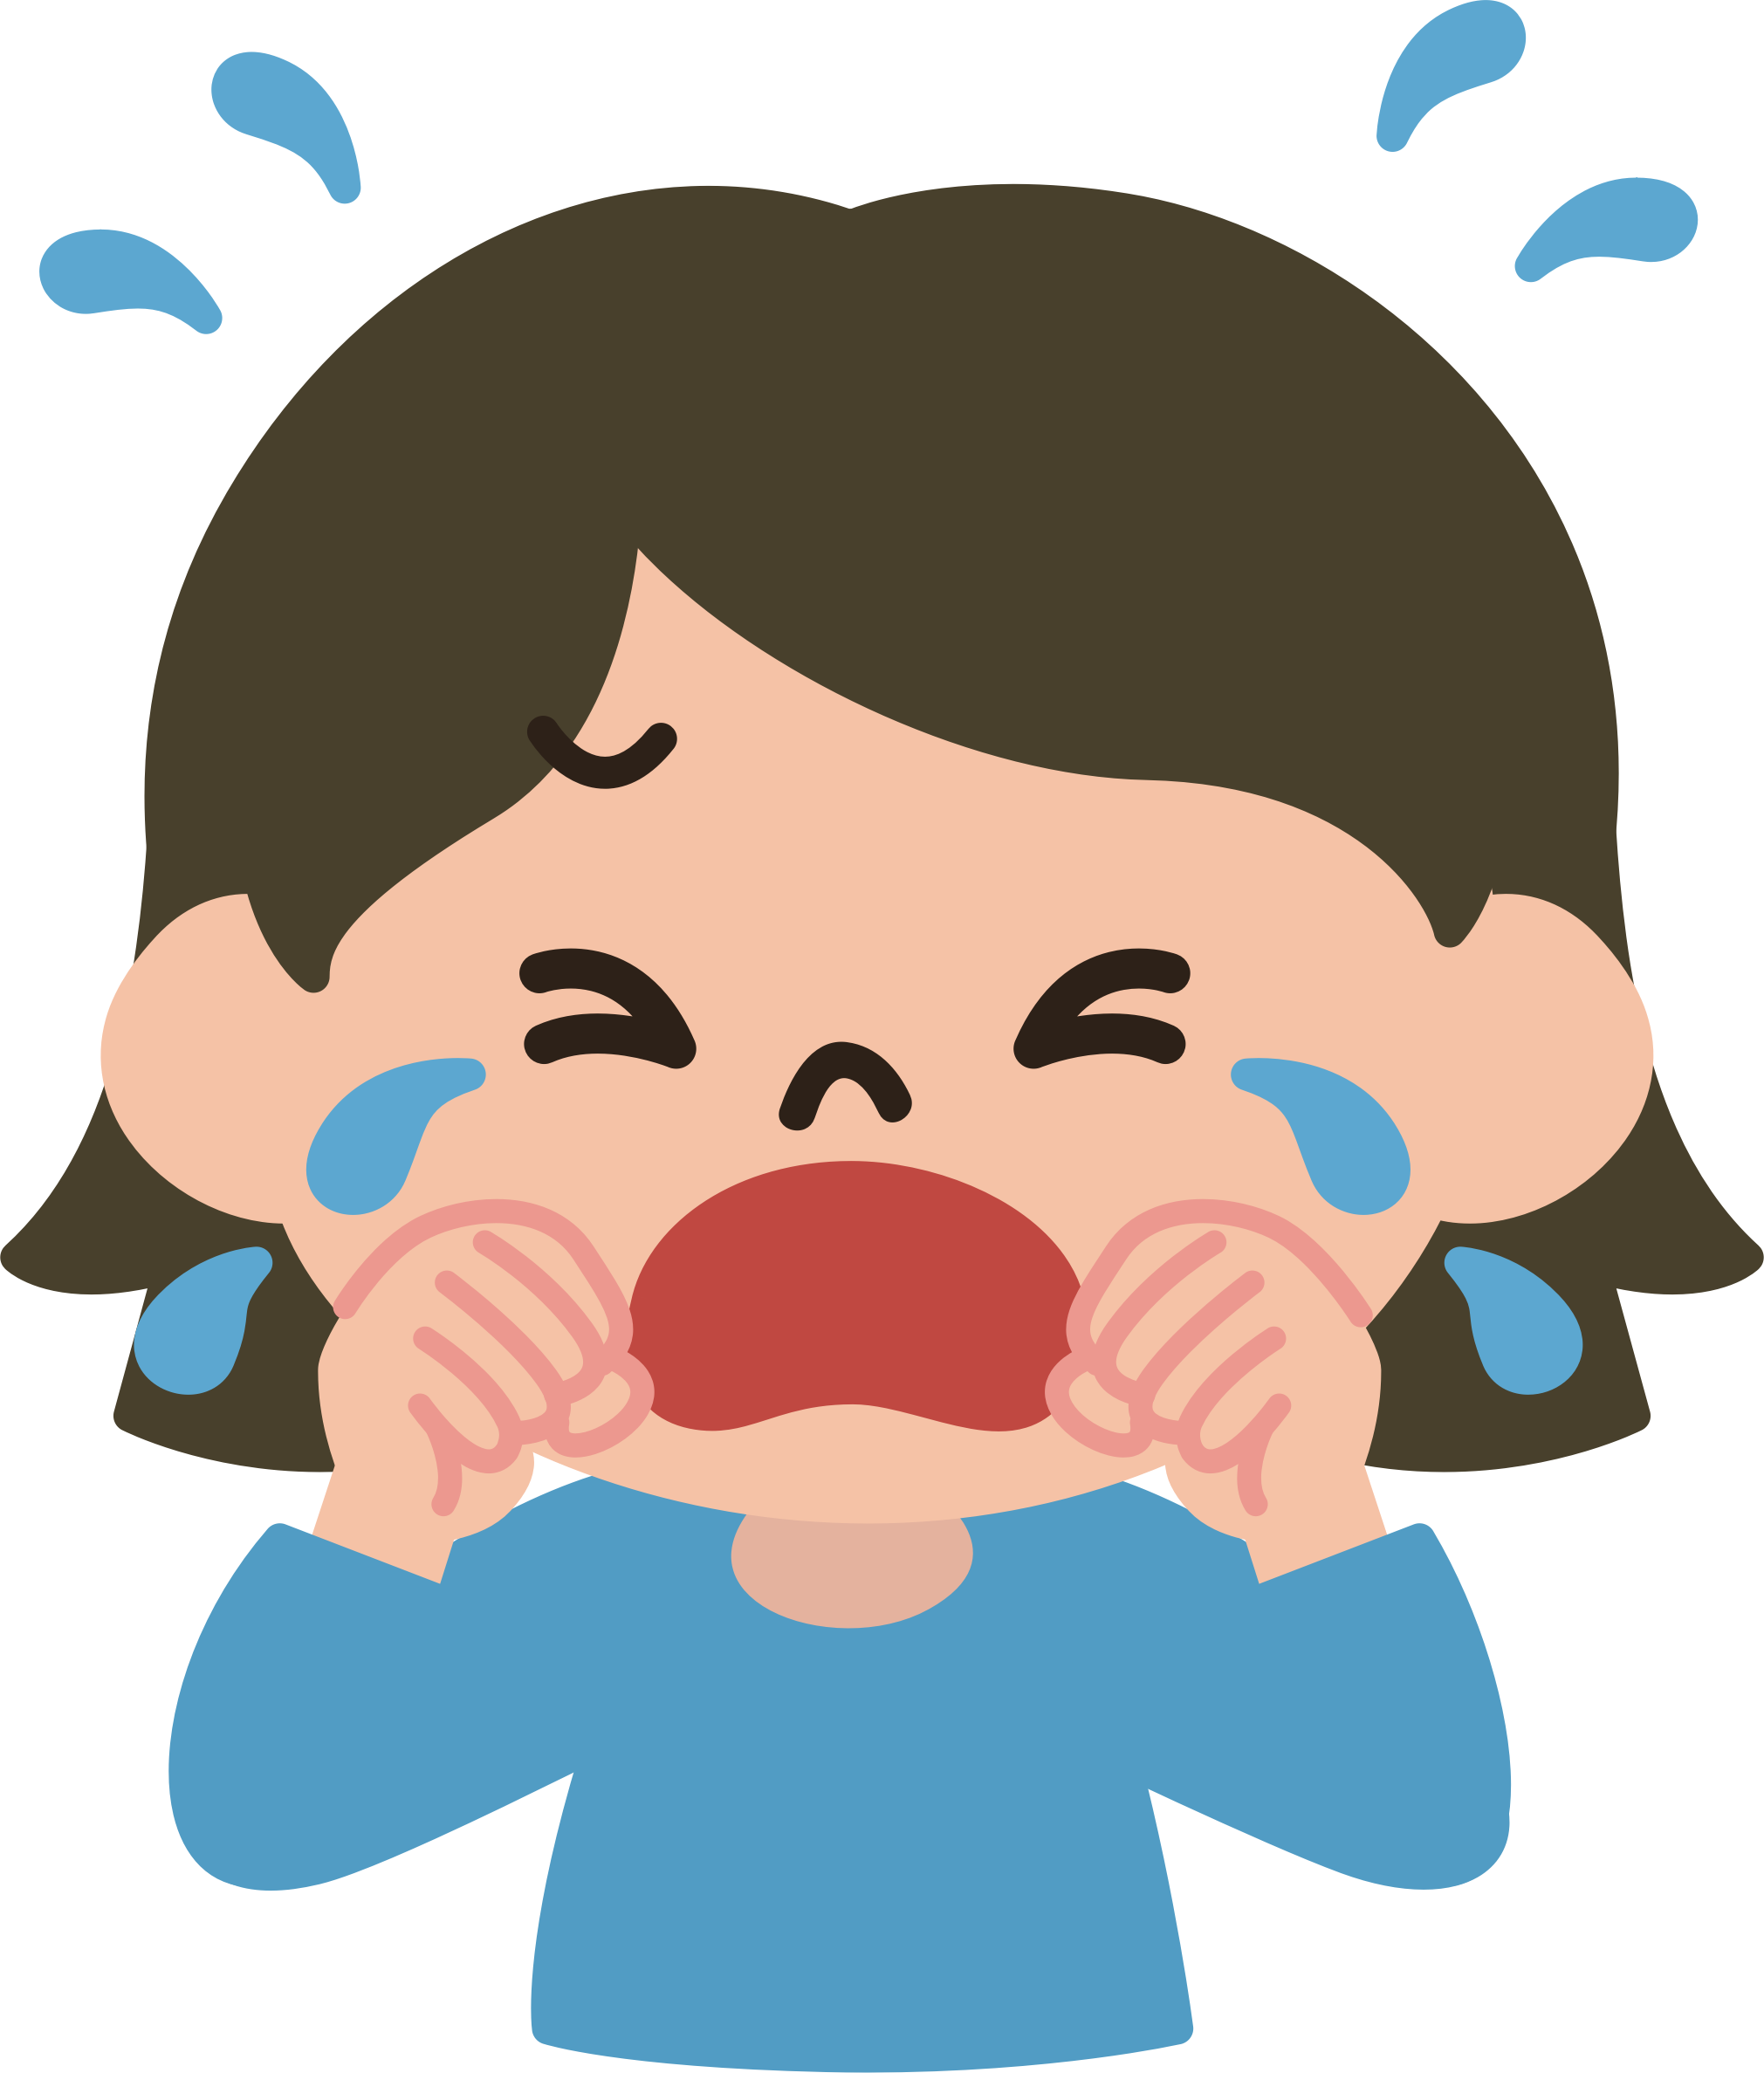 tears picture black. Crying clipart picture download